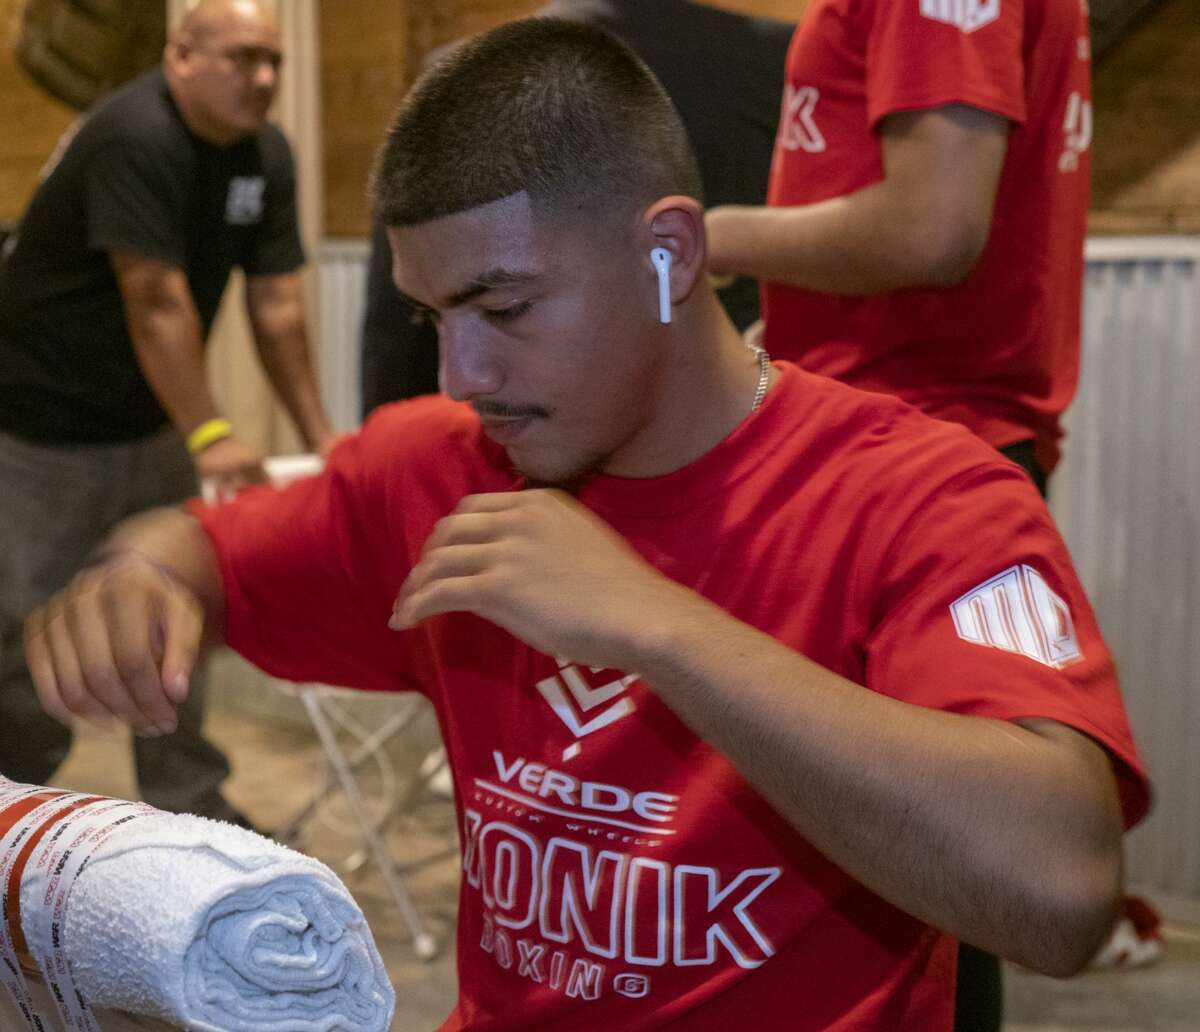 Michael Dutchover starts to get ready 09/20/19 night in the dressing rooms at The Hacienda Event Center, before his fight against Thomas Mattice. Tim Fischer/Reporter-Telegram